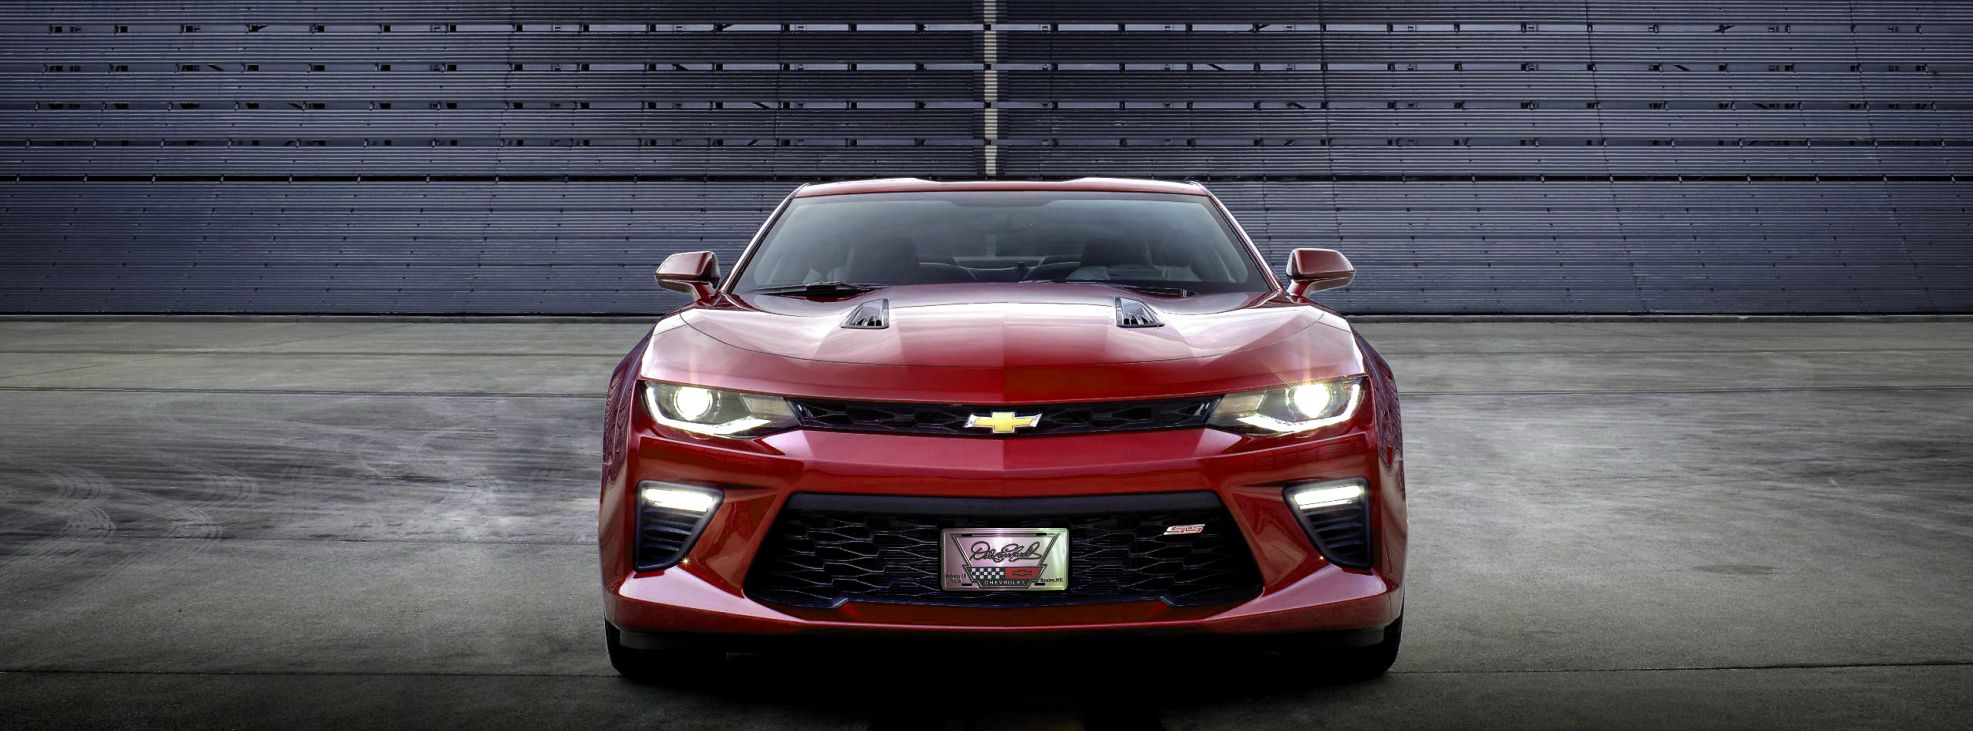 dale earnhardt chevrolet store retail store for dale earnhardt. Cars Review. Best American Auto & Cars Review